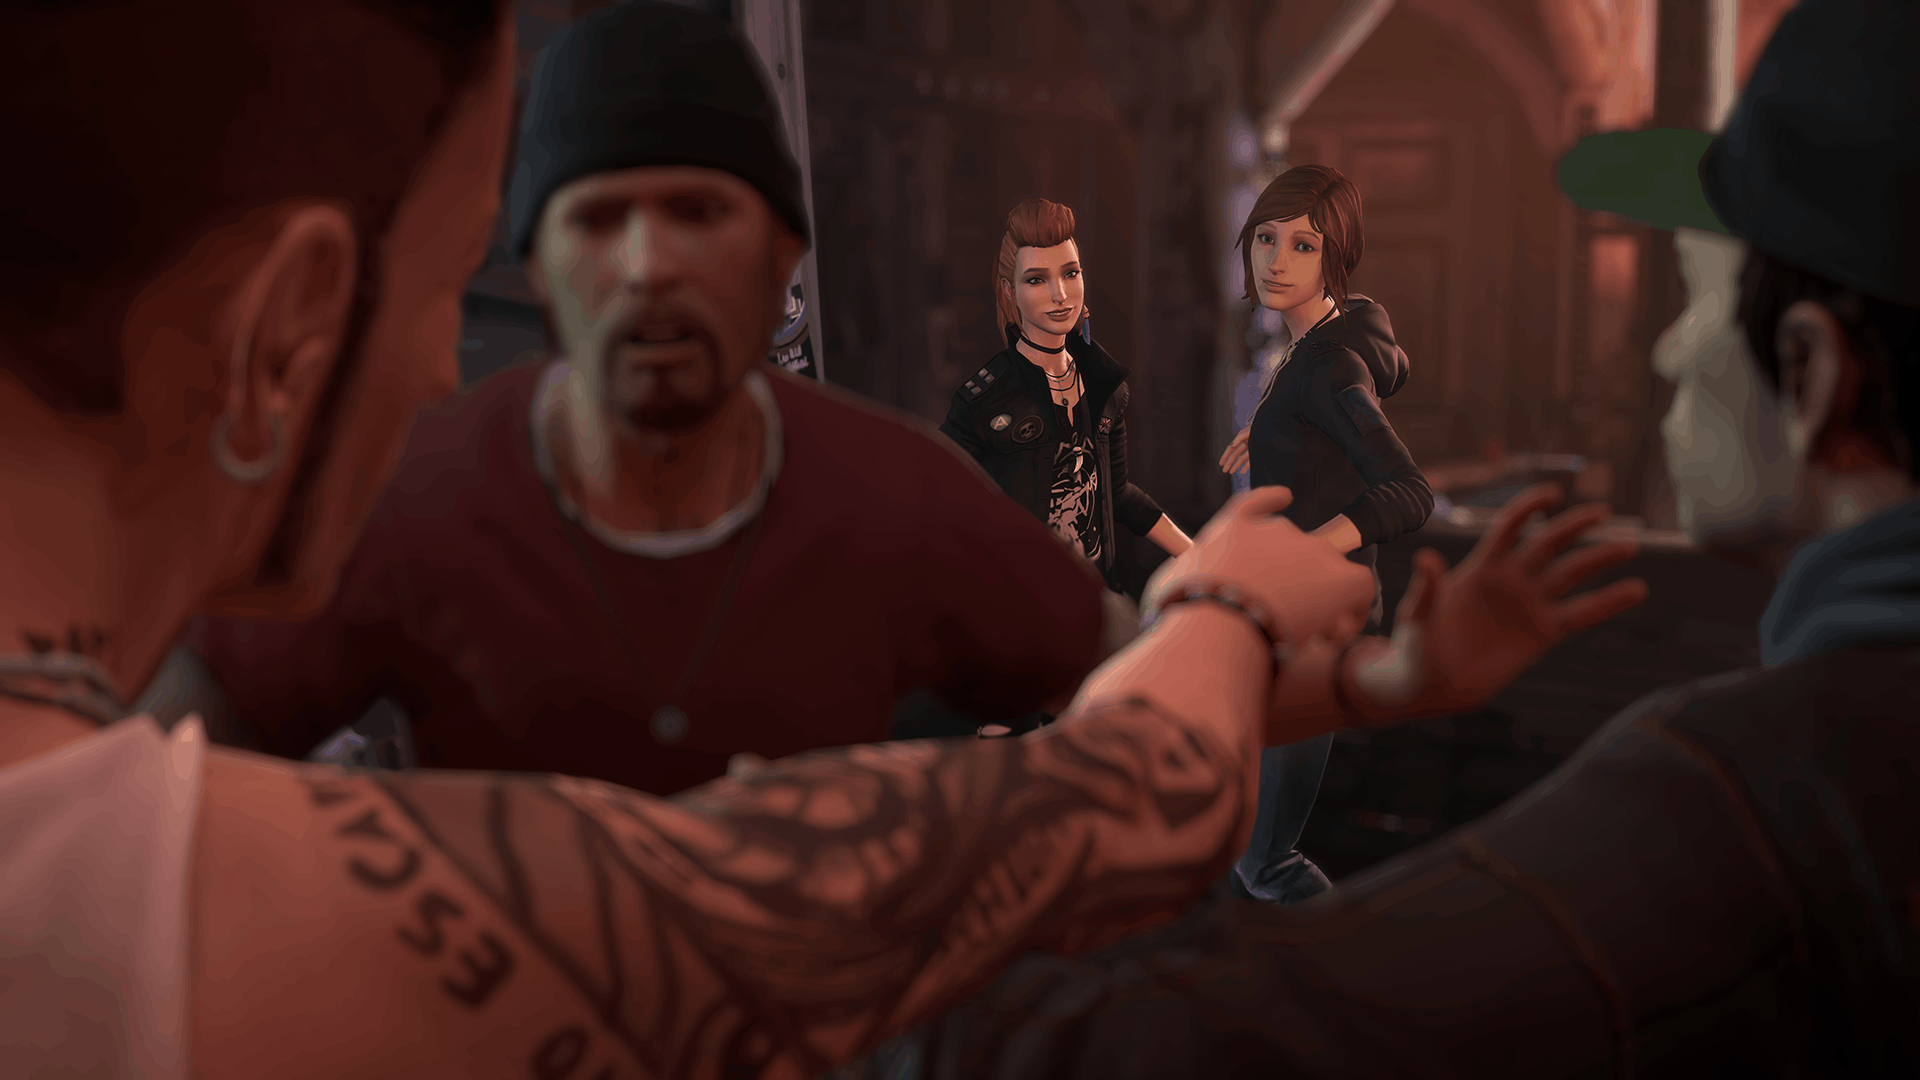 Lis Bts E32017 Screenshot03 1497257262